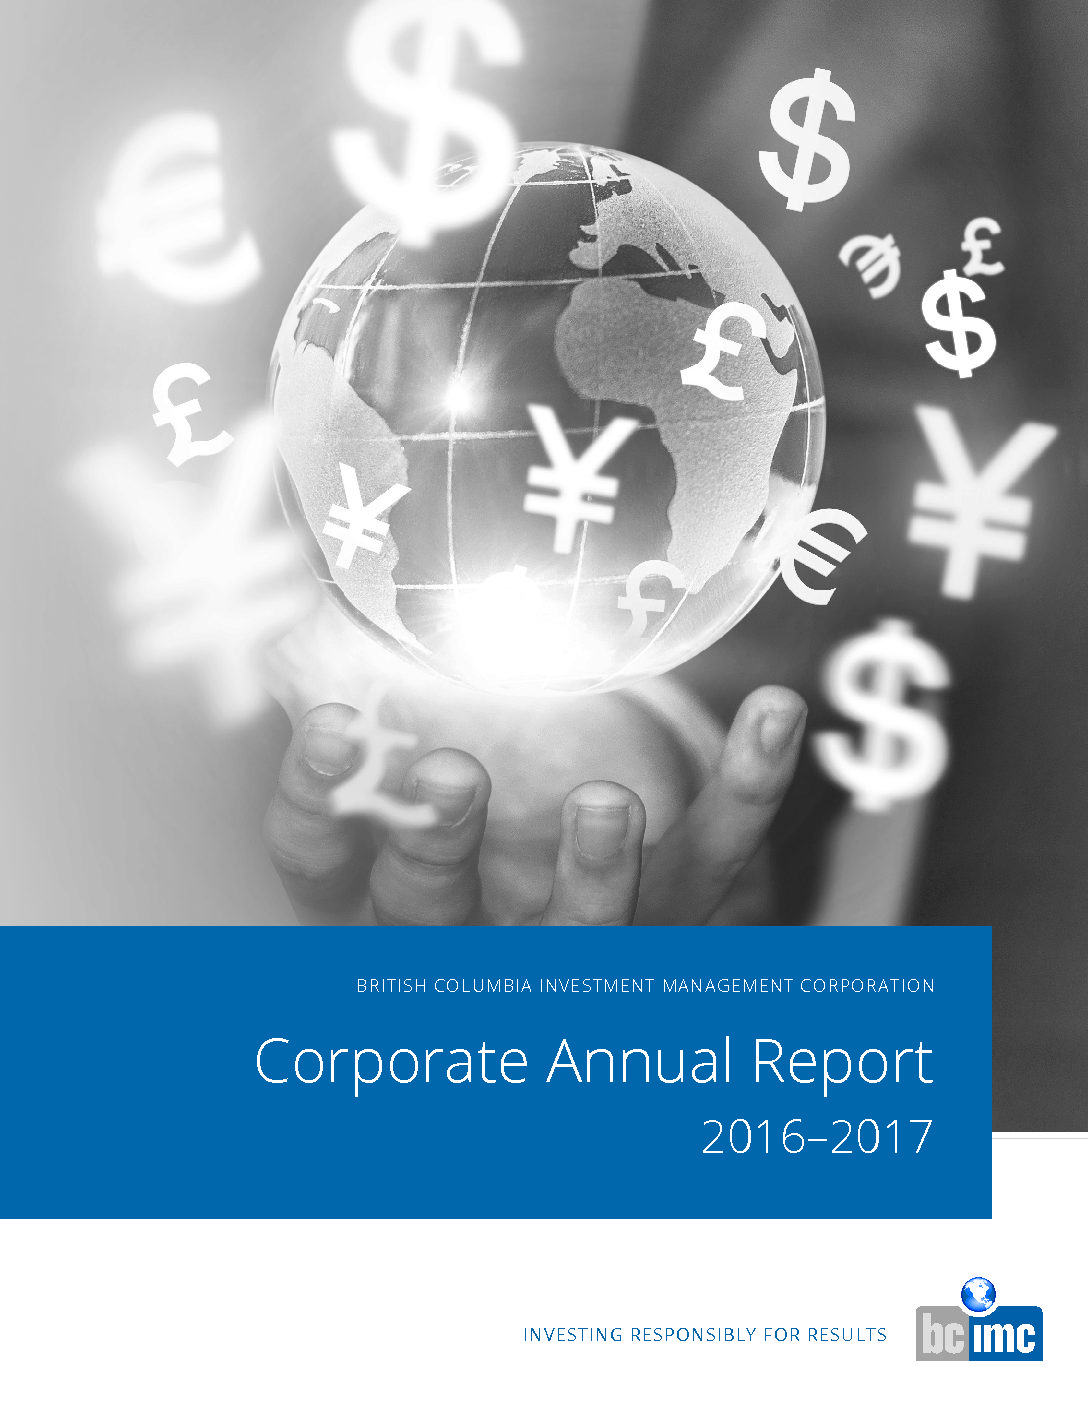 Download our Corporate Annual Report